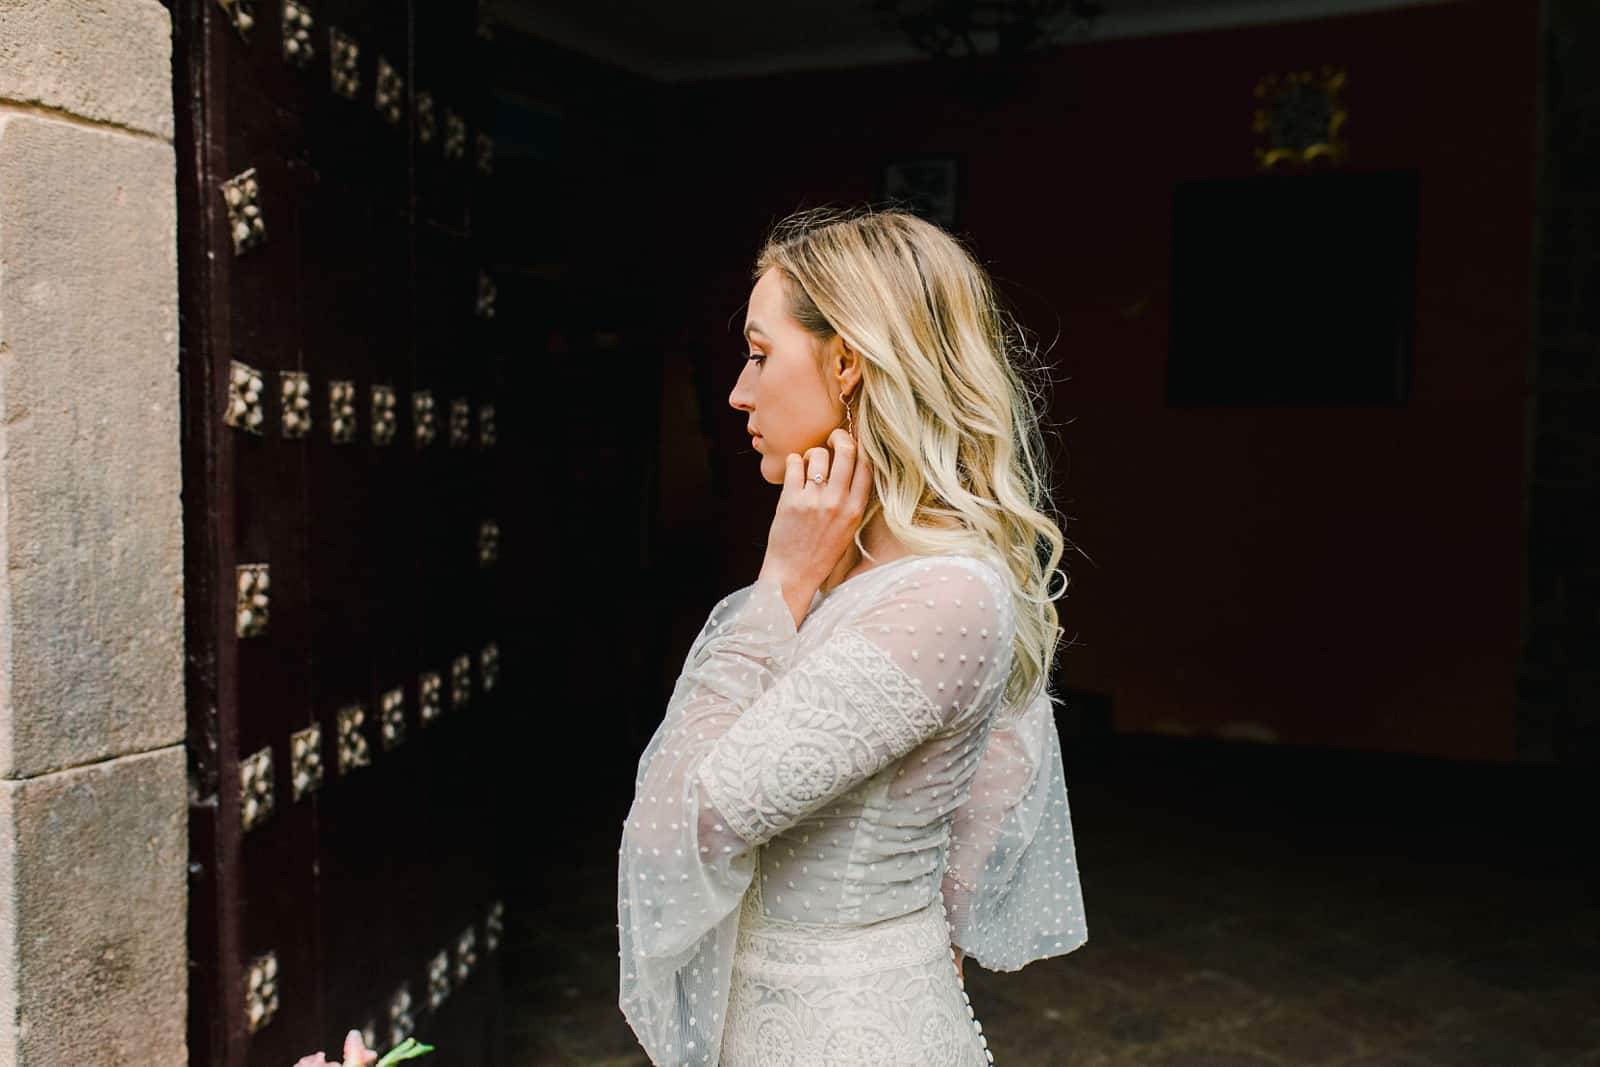 Cusco Peru Destination Wedding, travel wedding photography, boho bride lace dress with bell sleeves